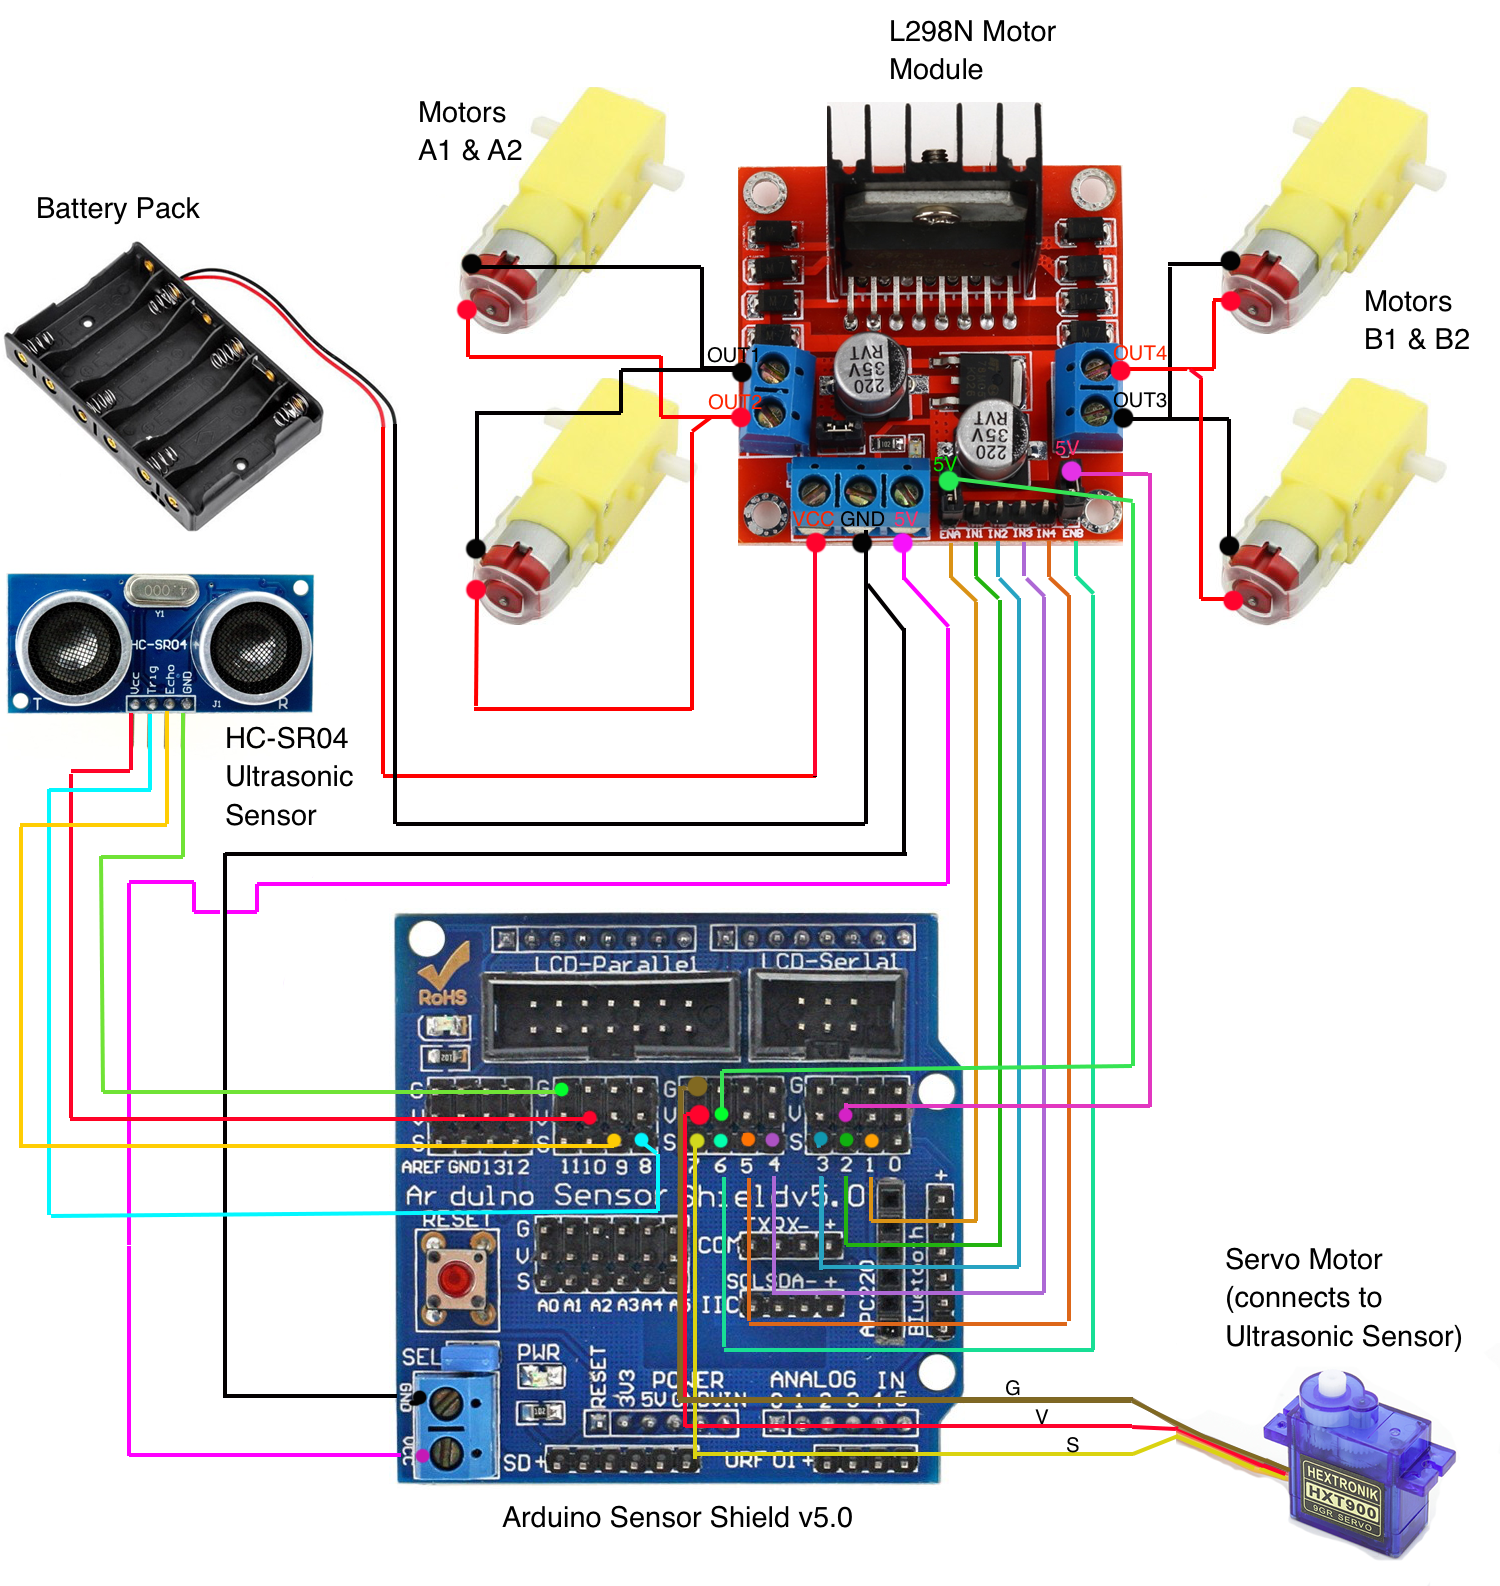 Building a 4wd autonomous car with arduino codemahal wiring diagram click for larger image asfbconference2016 Images